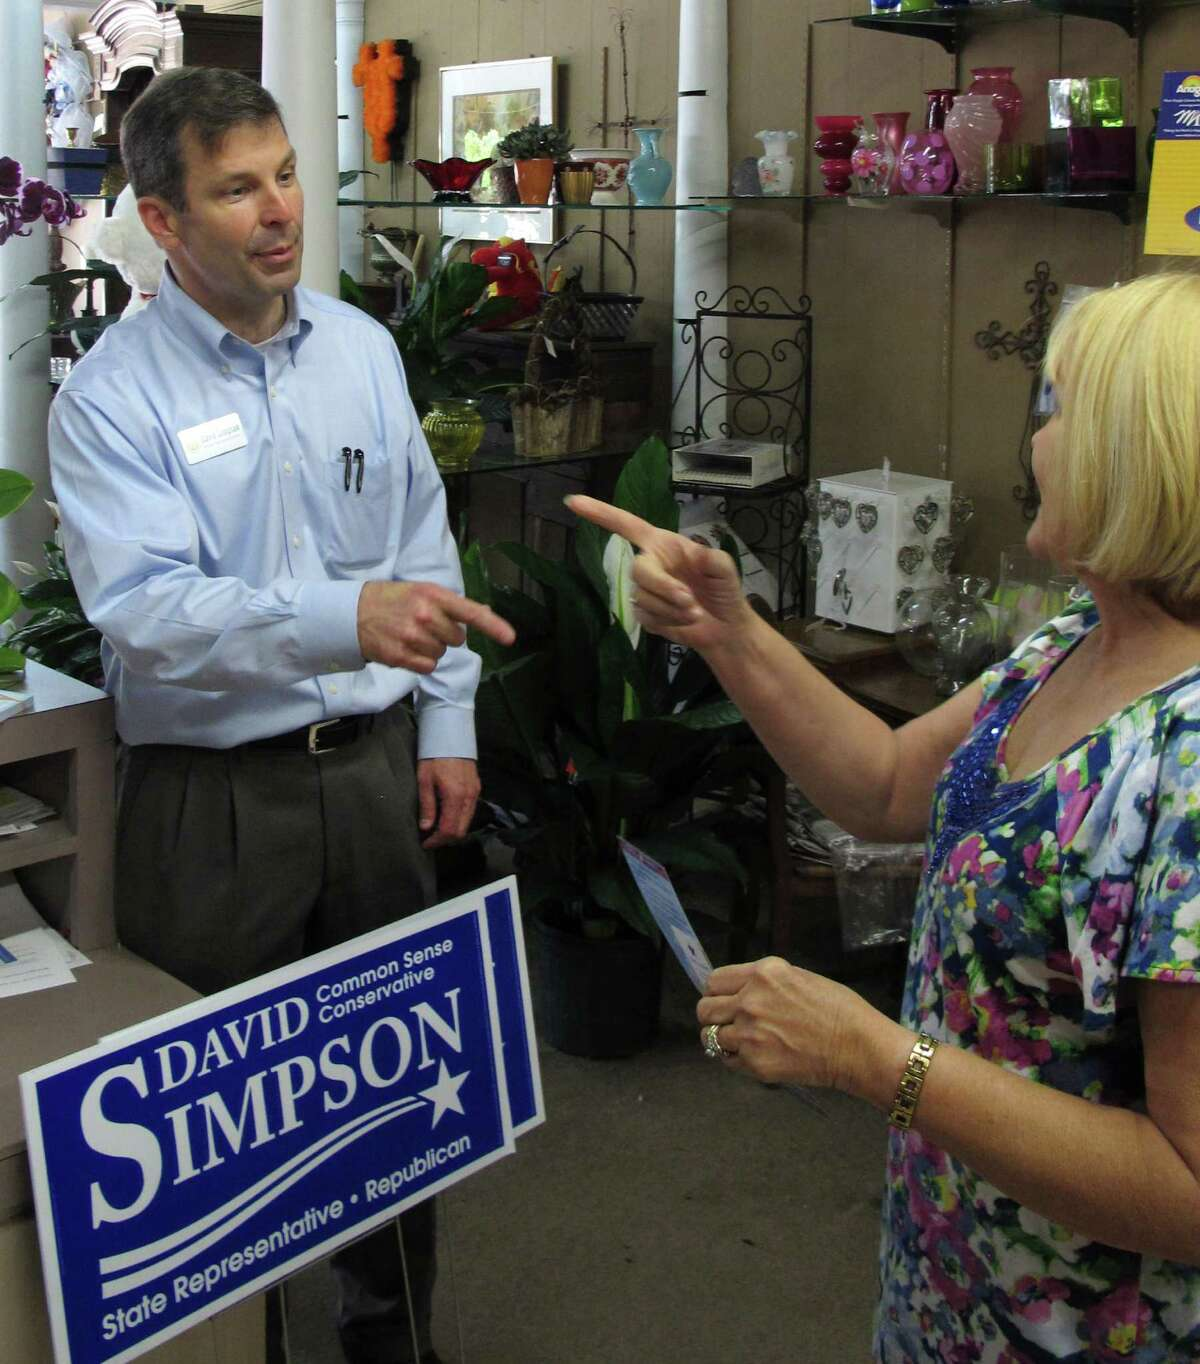 Republican state Rep. David Simpson, left, chats with flower shop employee Jaime Taylor, right, while campaigning April 25, 2012, in Longview, Texas. Simpson is a strident conservative and tea party favorite who faces the man he beat two years ago, former state Rep. Tommy Merritt, in the Texas Republican primary May 29. (AP Photo/Will Weissert)